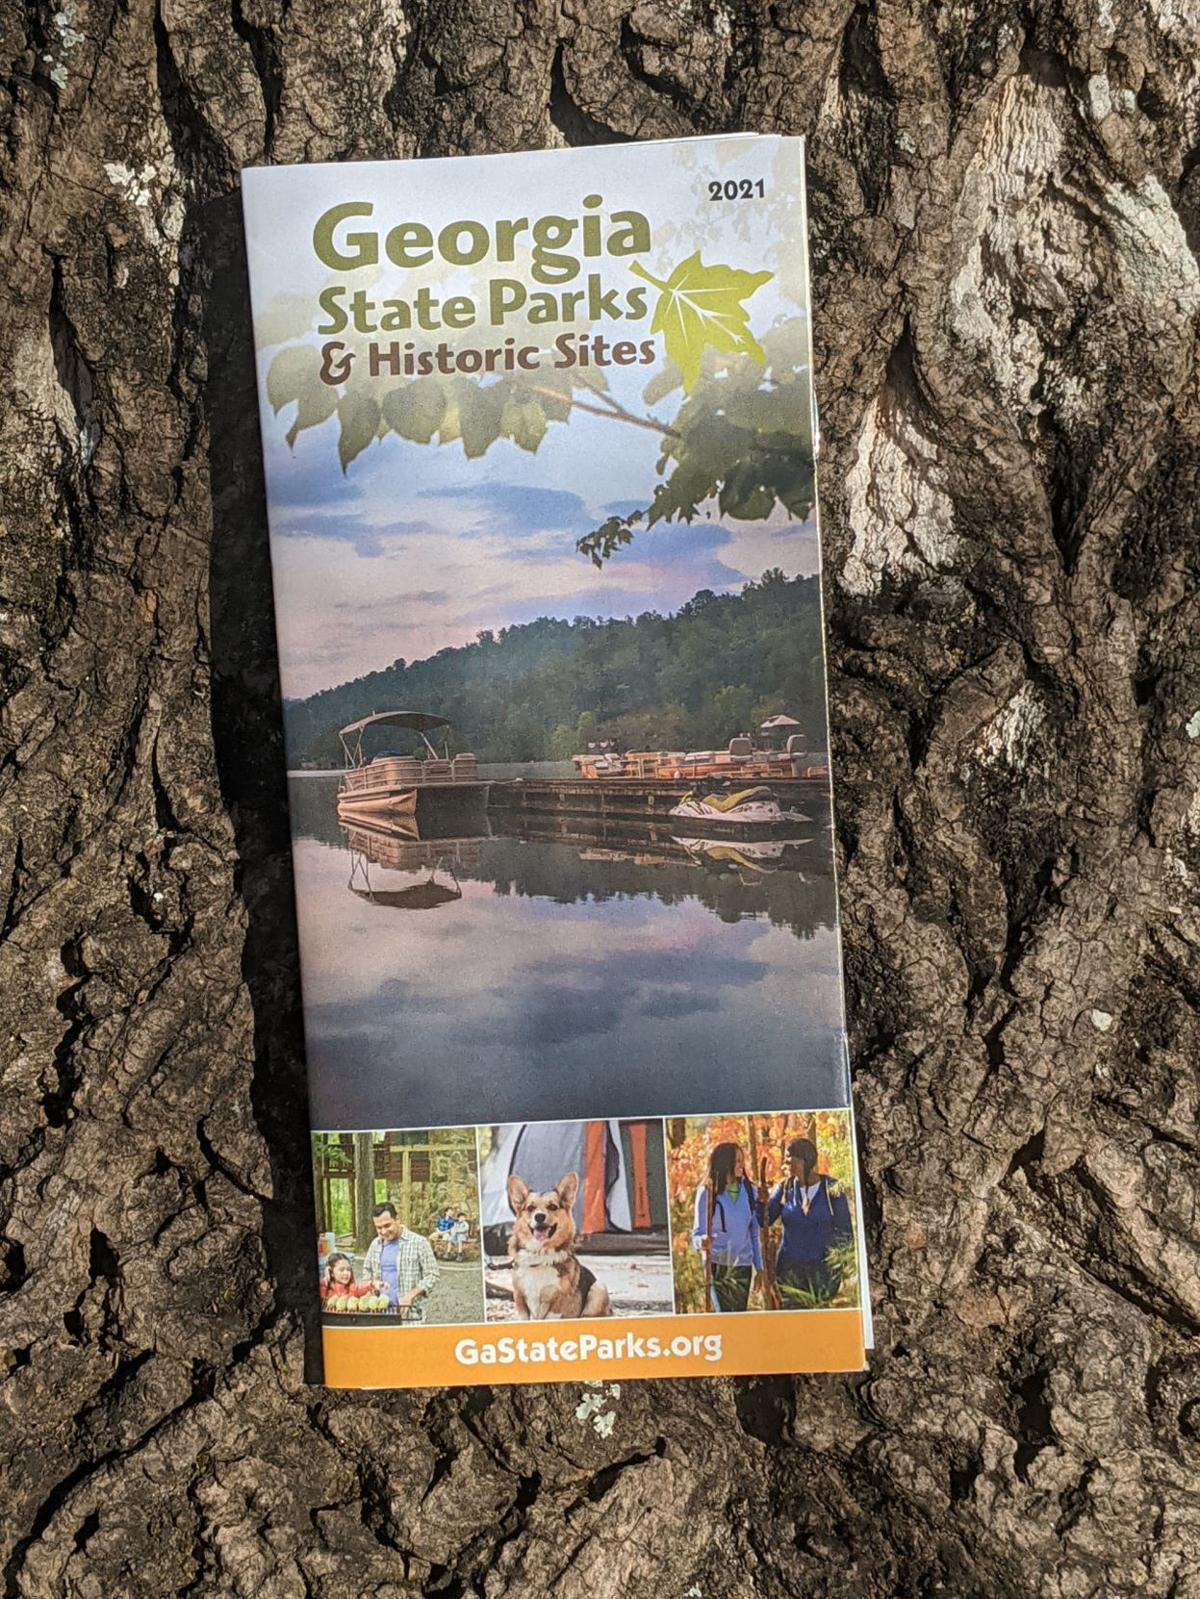 Georgia State Park passes, travel guide help you explore more in 2021